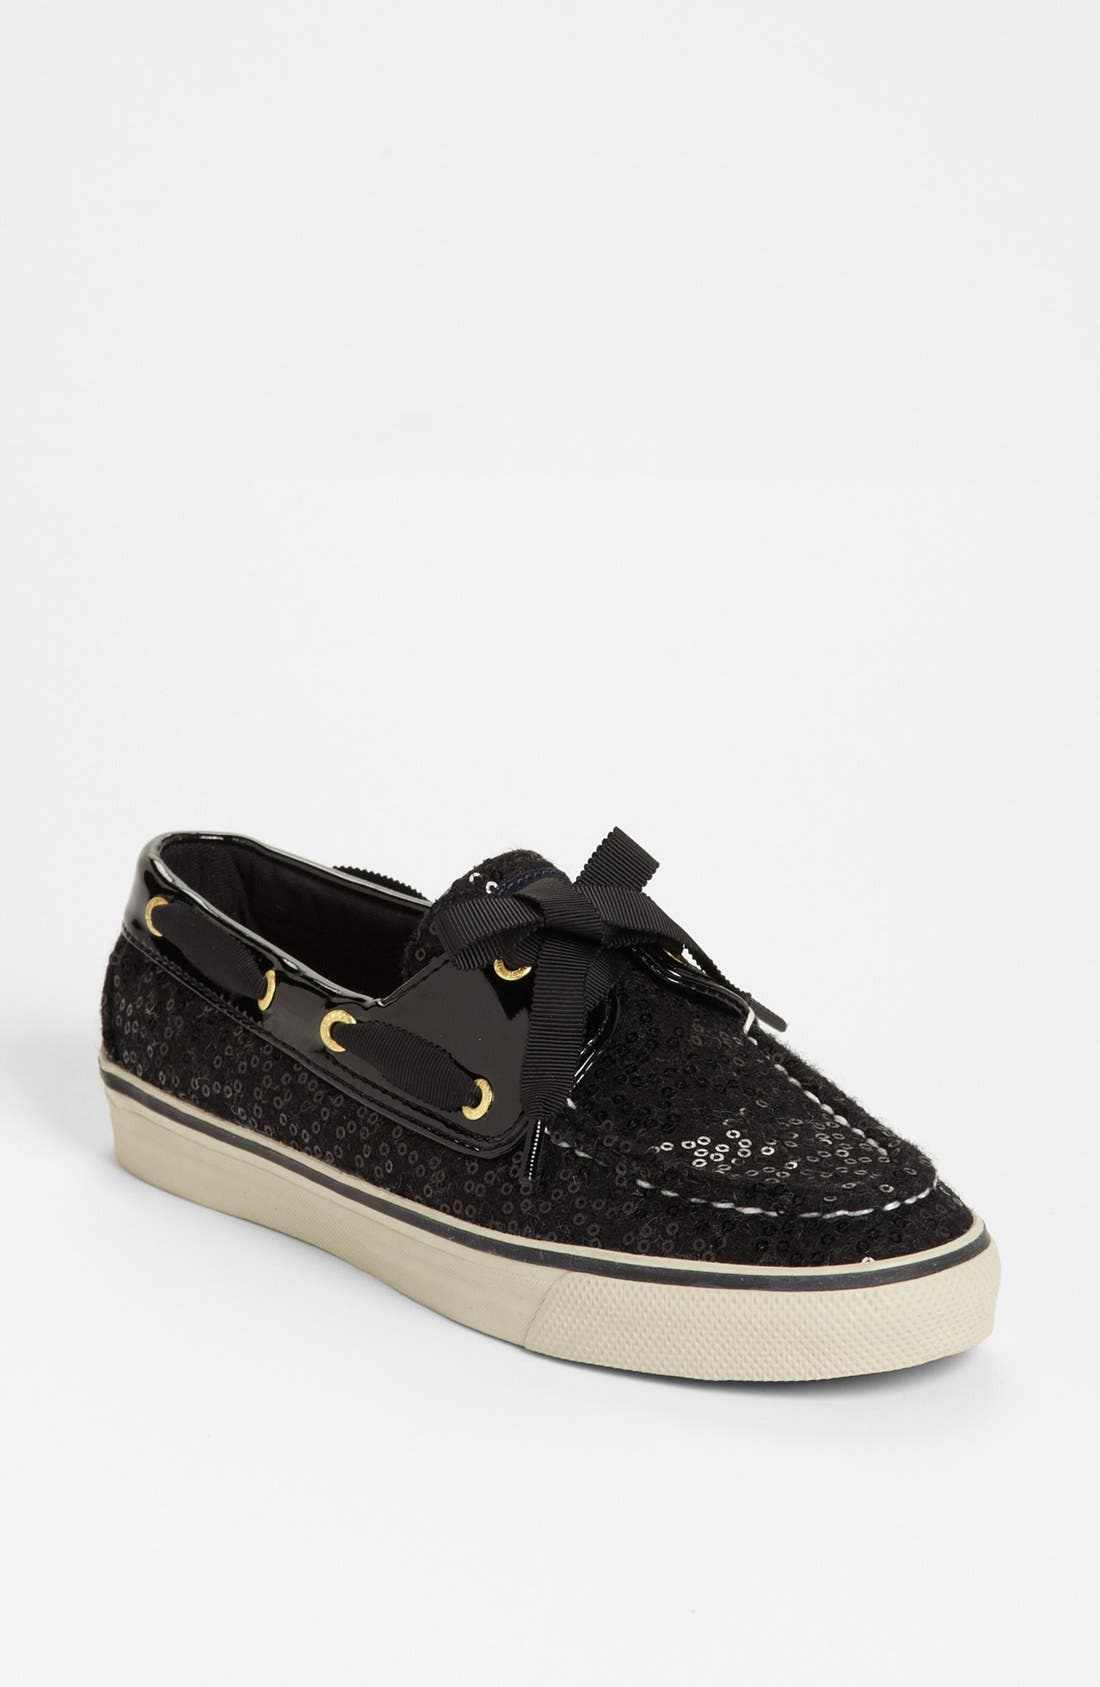 Main Image - SPERRY BAHAMA SEQUIN BOAT SHOE